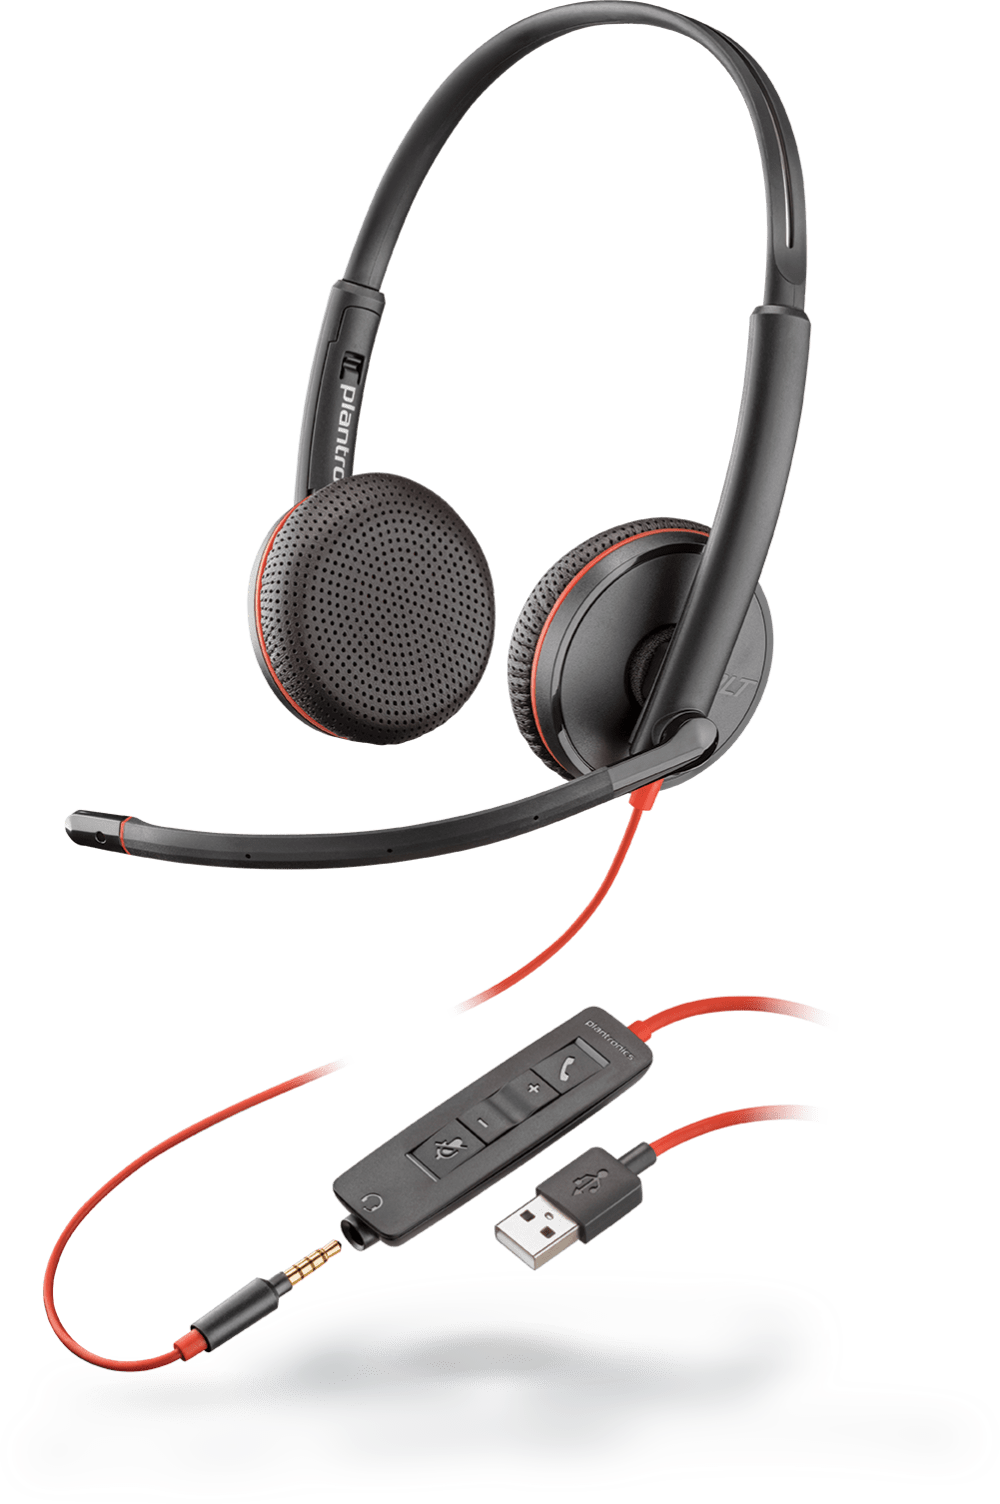 medium resolution of blackwire 3200 series offers professional sound in a durable portable and comfortable design making them a no compromise budget friendly solution for